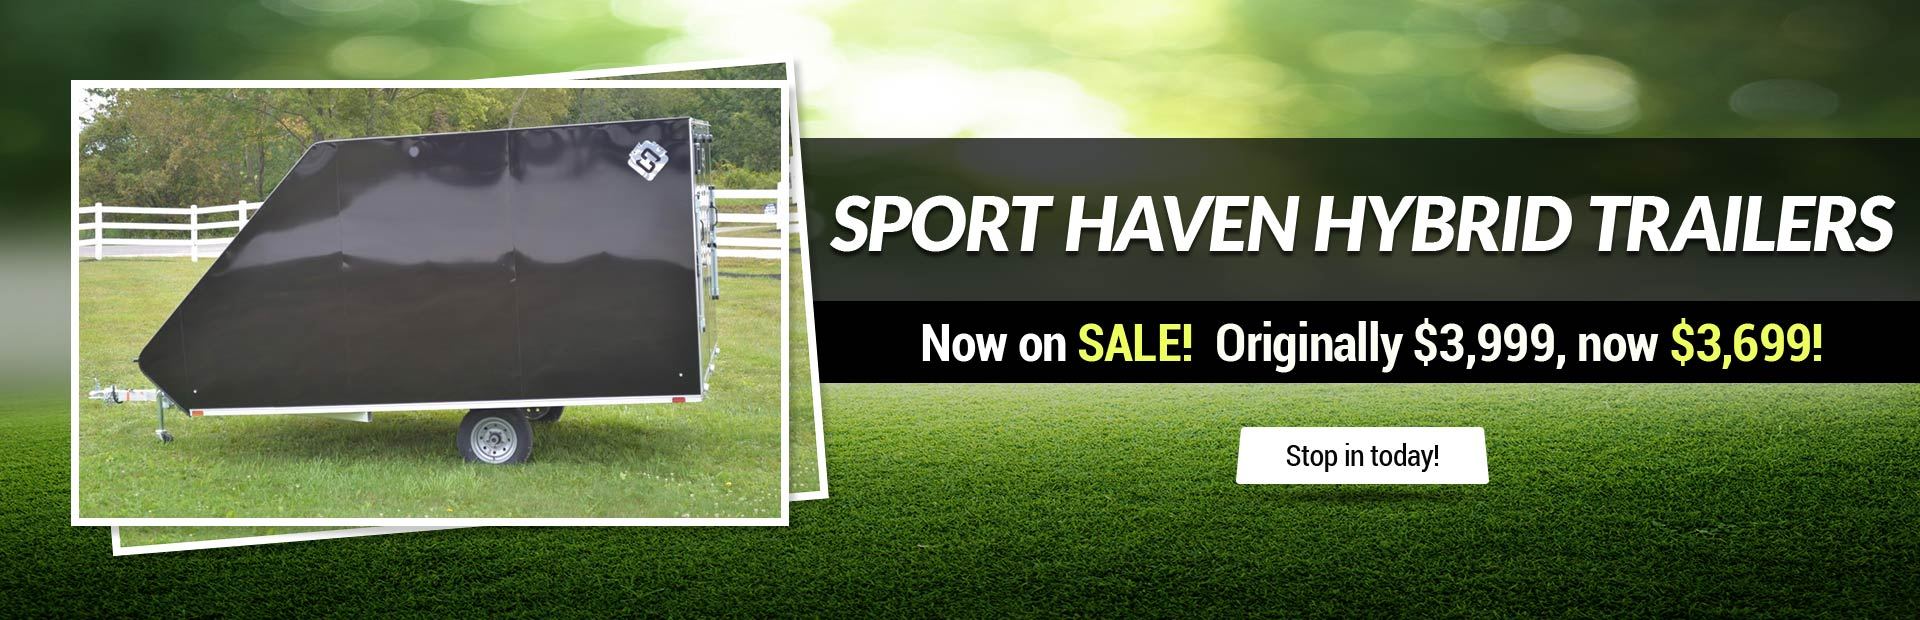 Sport Haven Hybrid Trailers Now on Sale: Originally $3,999, now $3,699! Stop in today!